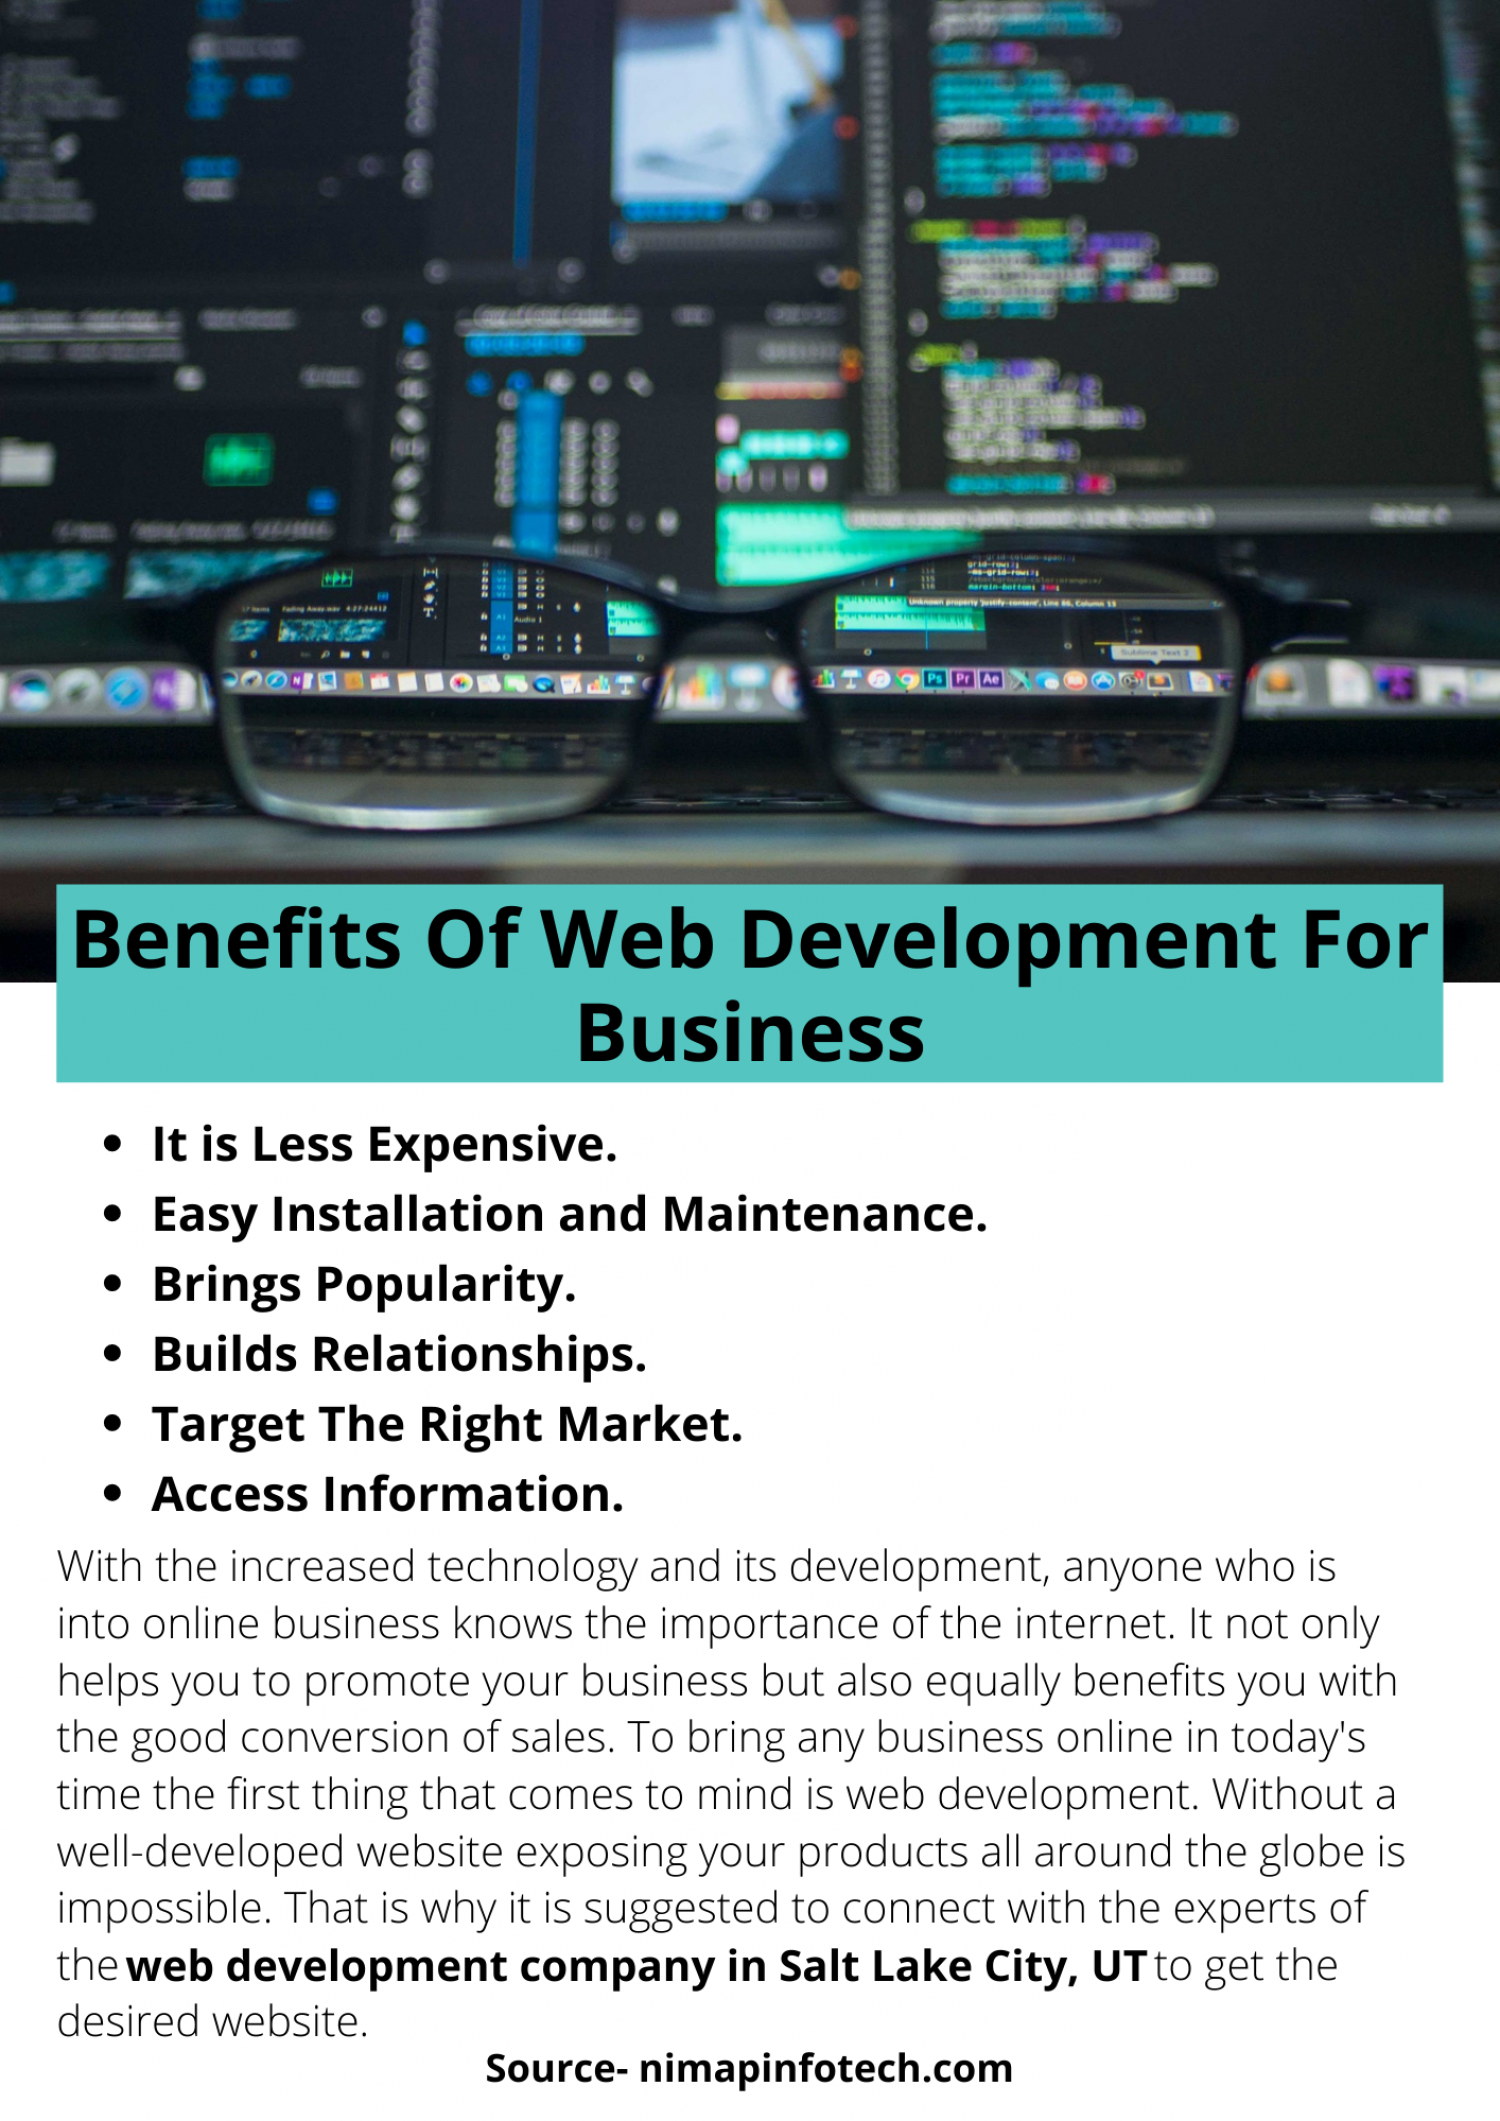 Benefits Of Web Development For Business Infographic